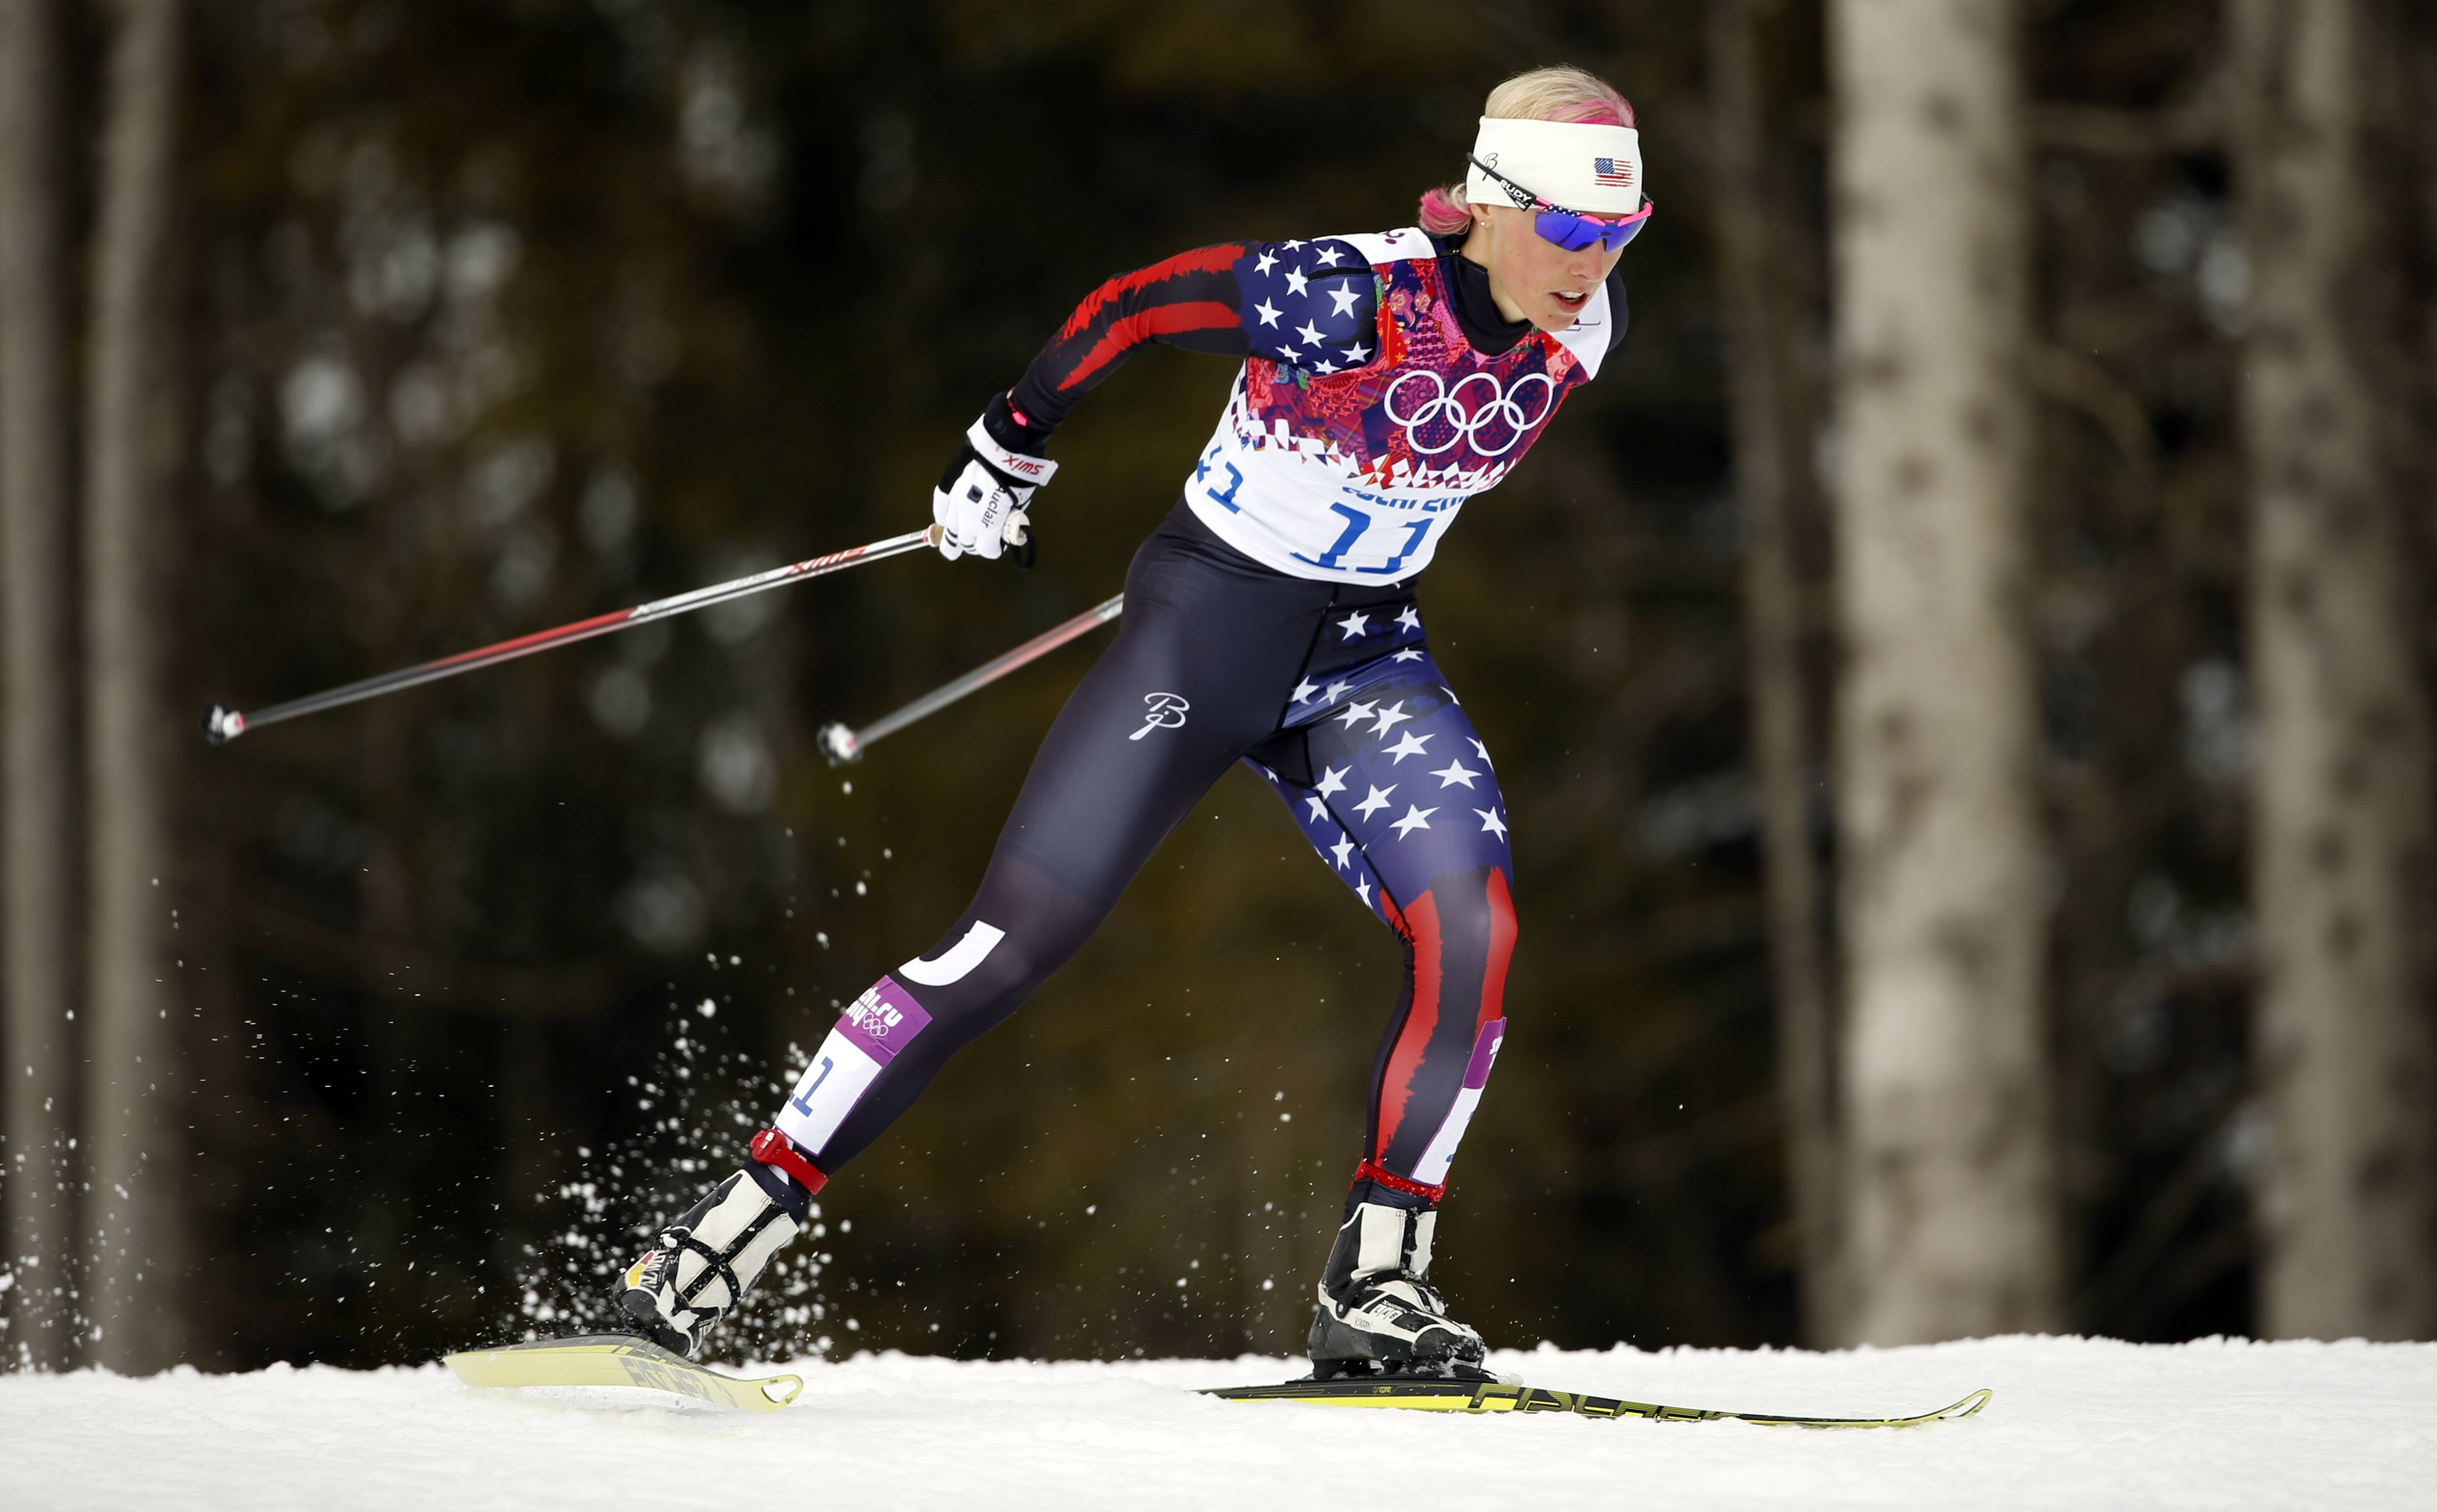 United States' Kikkan Randall competes during the women's qualifications of the cross-country sprint.